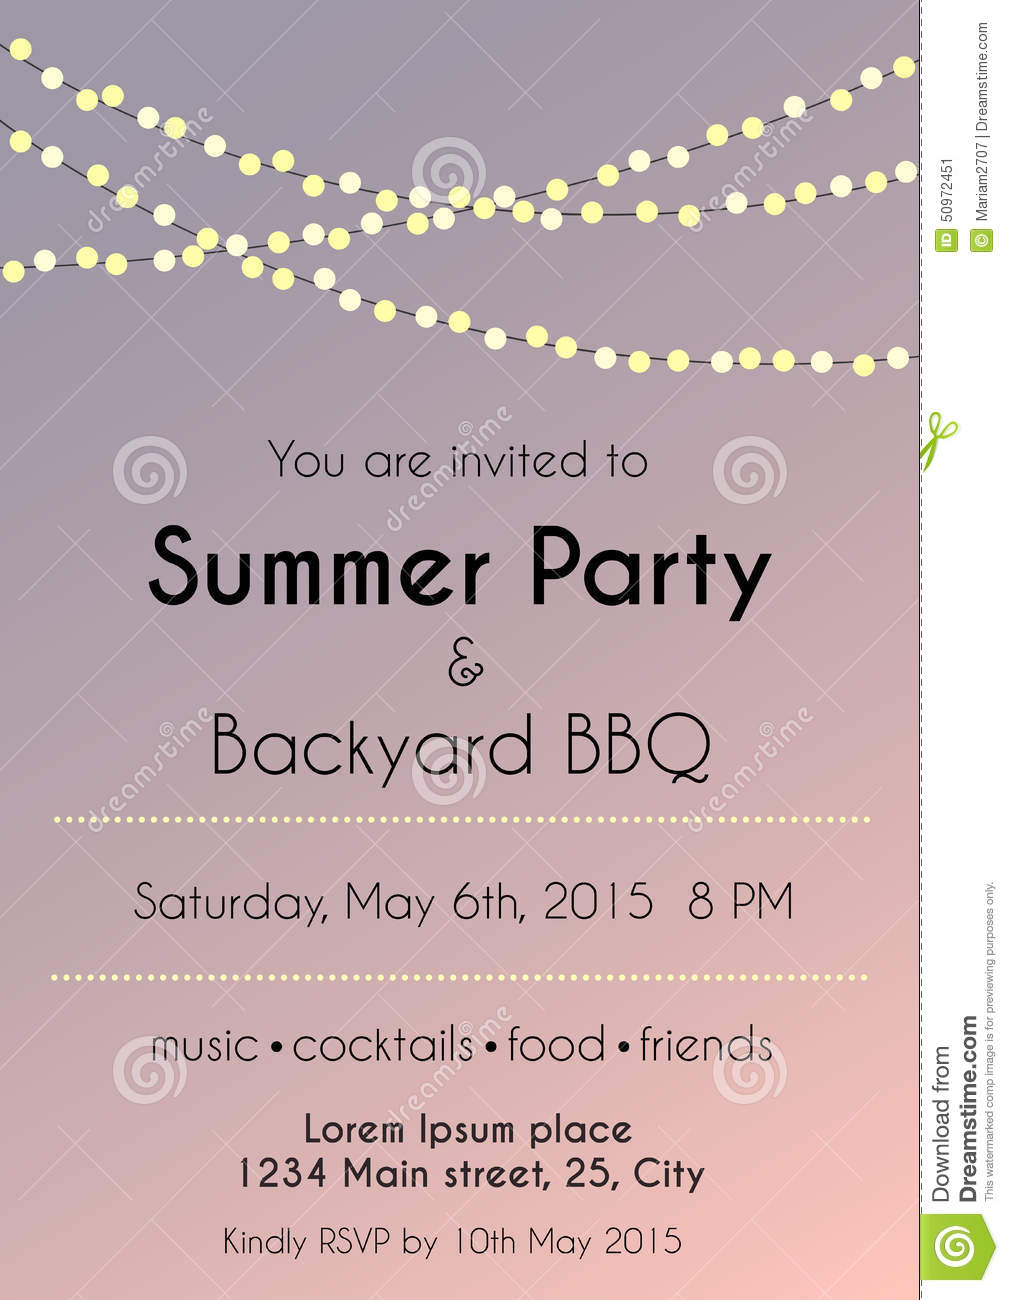 sunset summer party invitation stock vector image 50972451 sunset summer party invitation